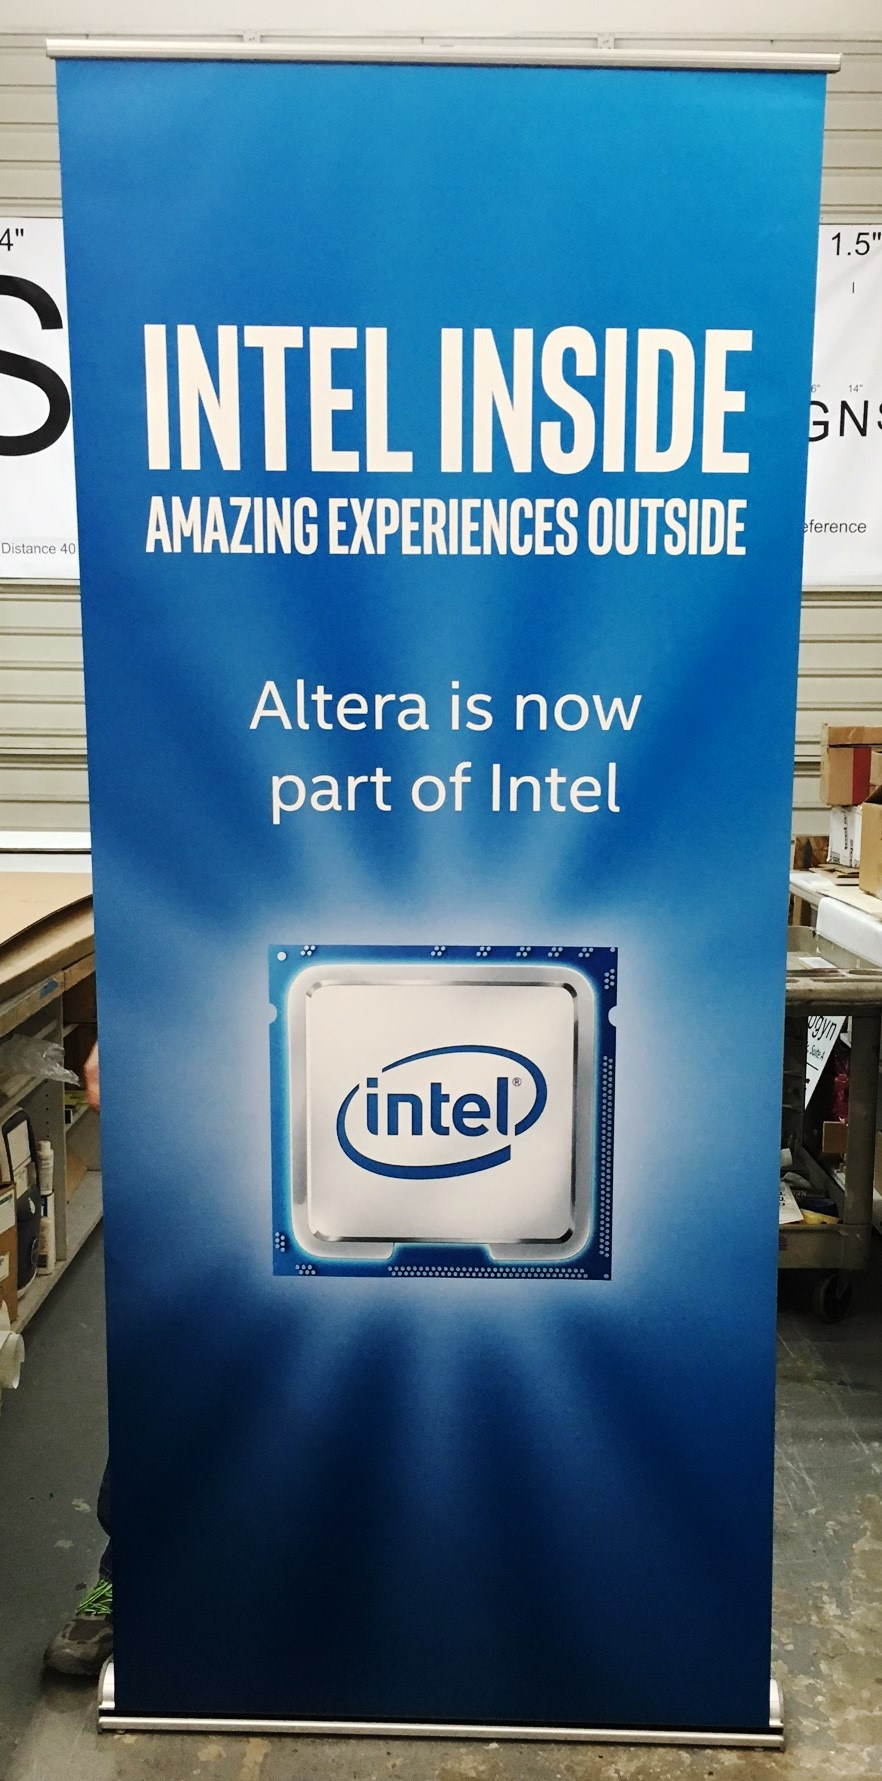 Intel Acquires Altera - Announcement Banner - Signs Unlimited